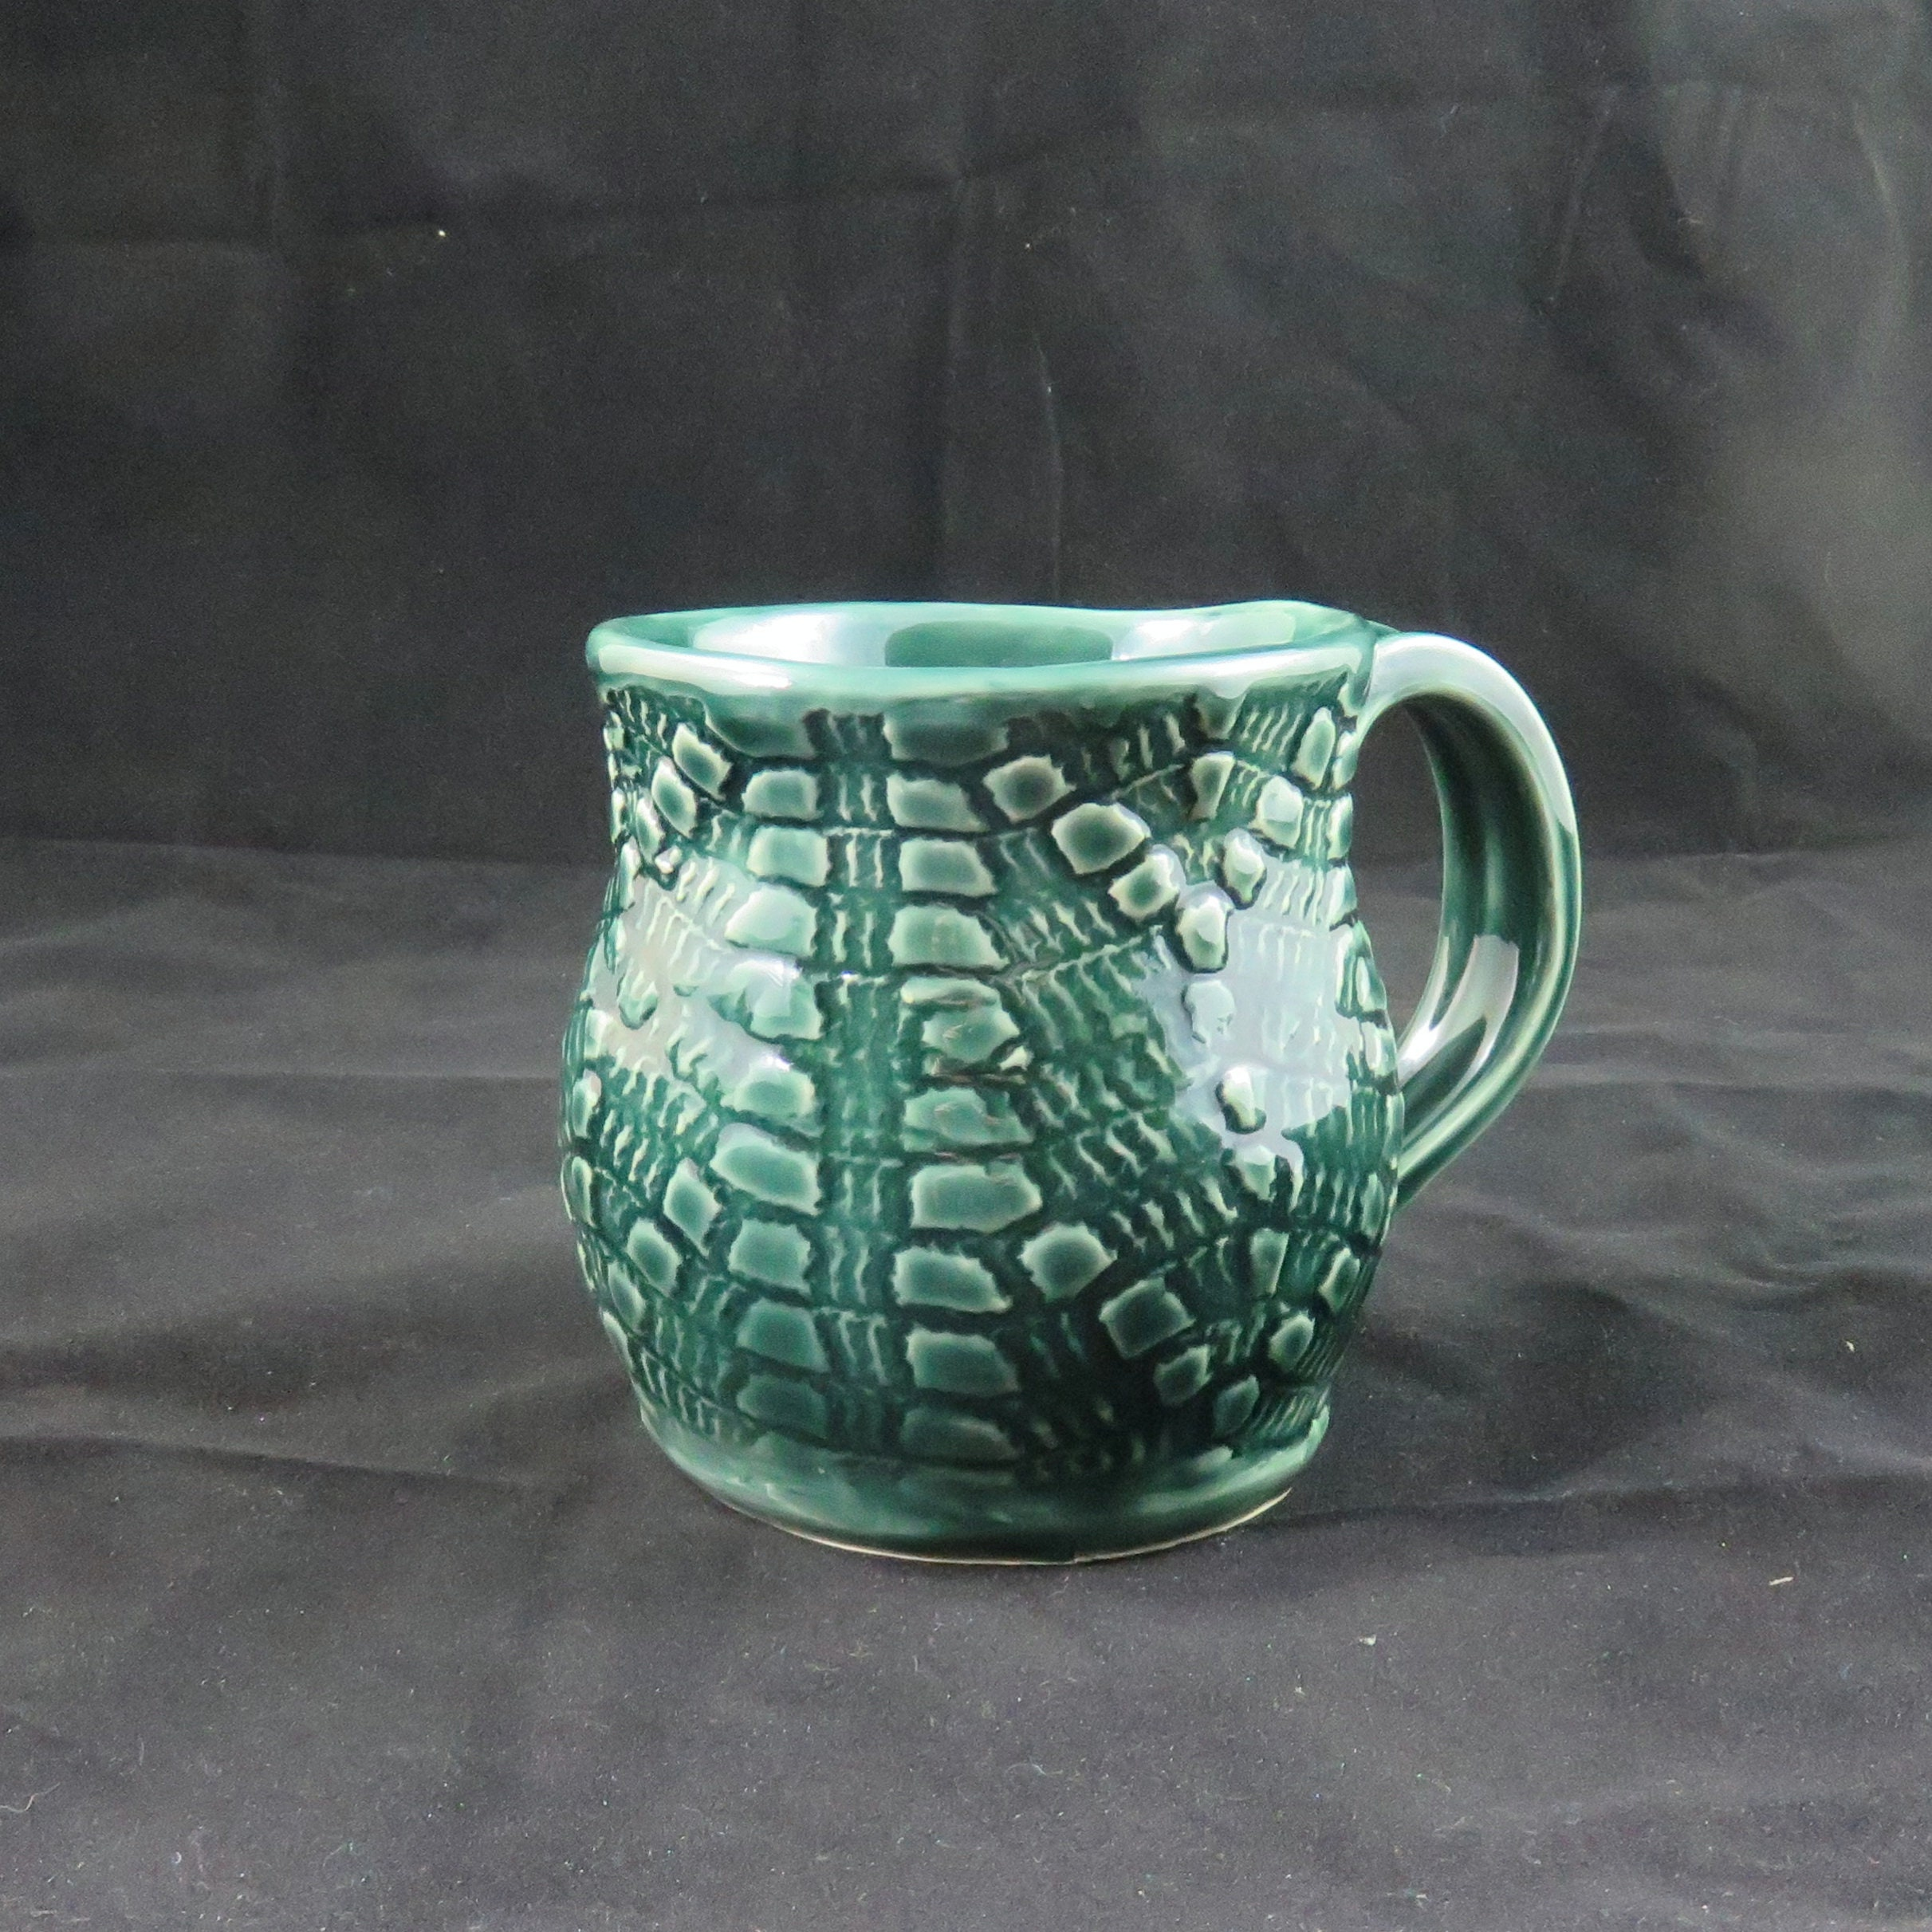 Unique Pottery Mug Handbuilt Ceramic Mug Green Ceramic Mug Ready To Ship Funky Mug Unusual Mug 16 Oz Large Mug Soul Shine Pottery Vintage